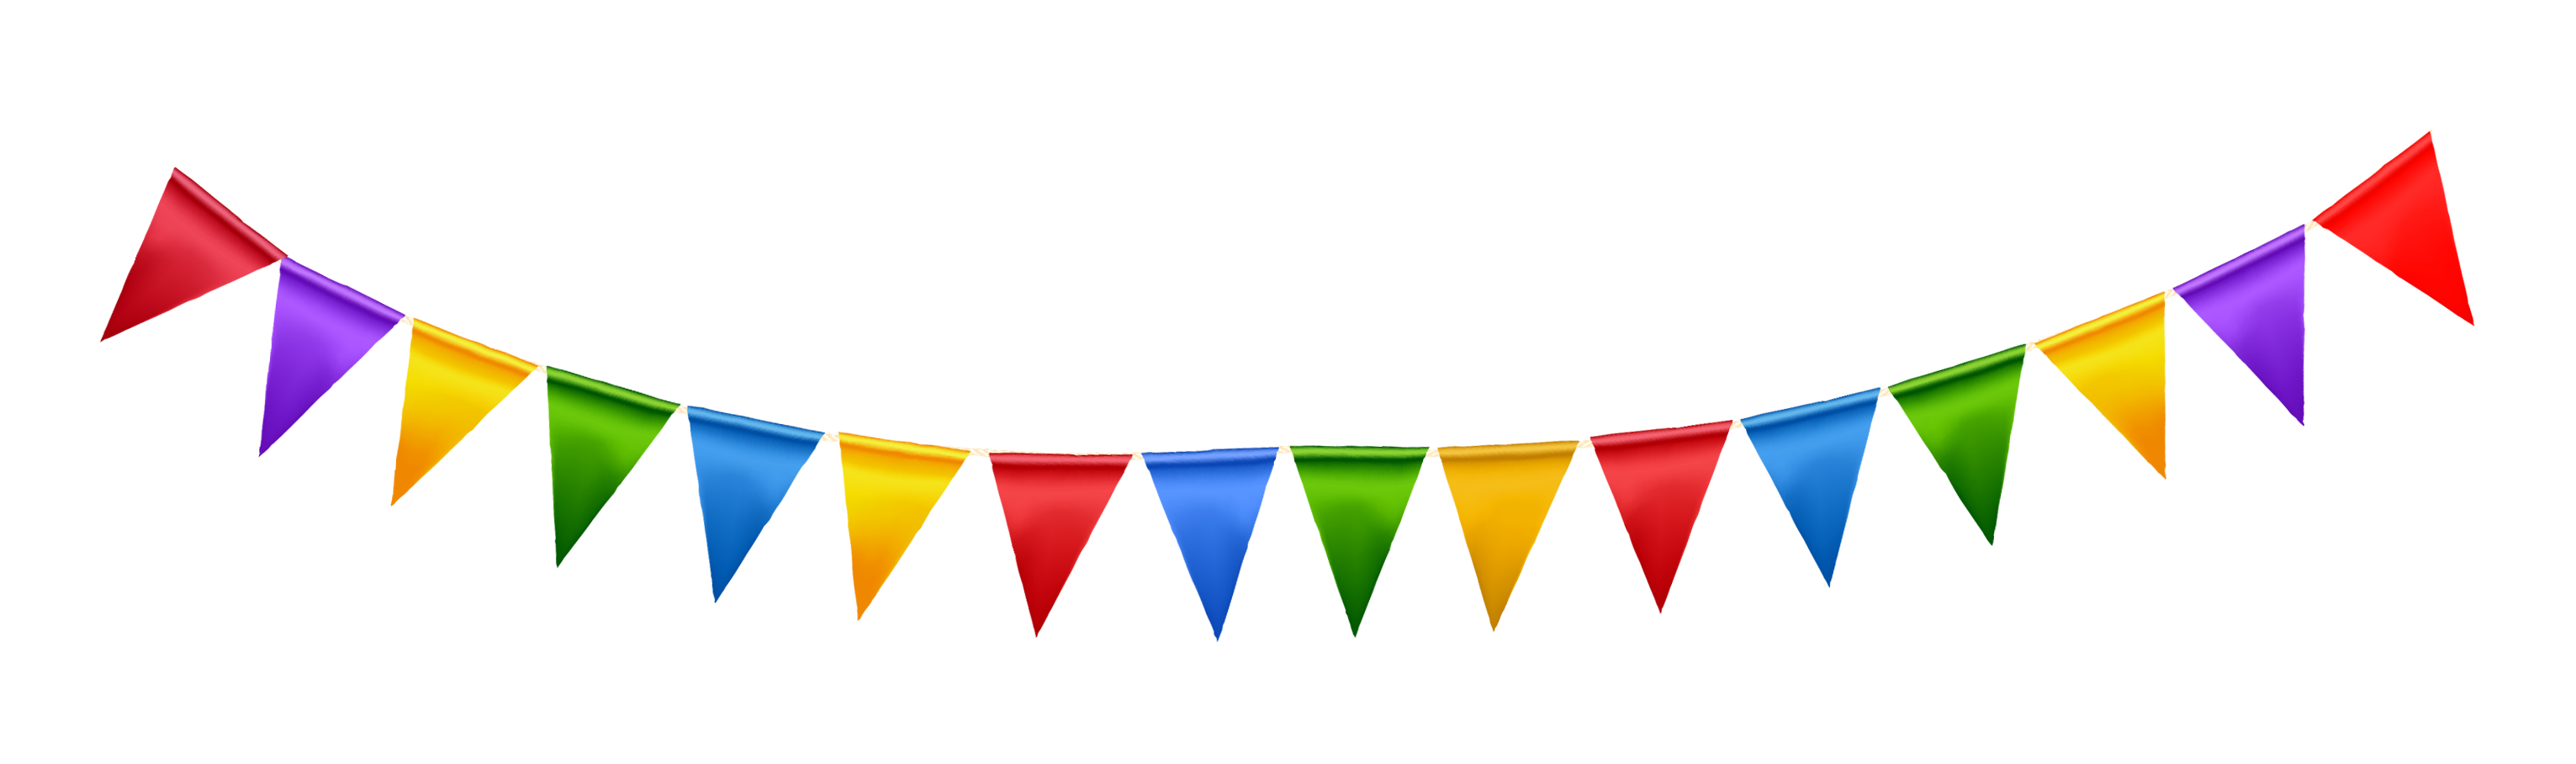 Streamers clipart birthday party. Streamer transparent png gallery